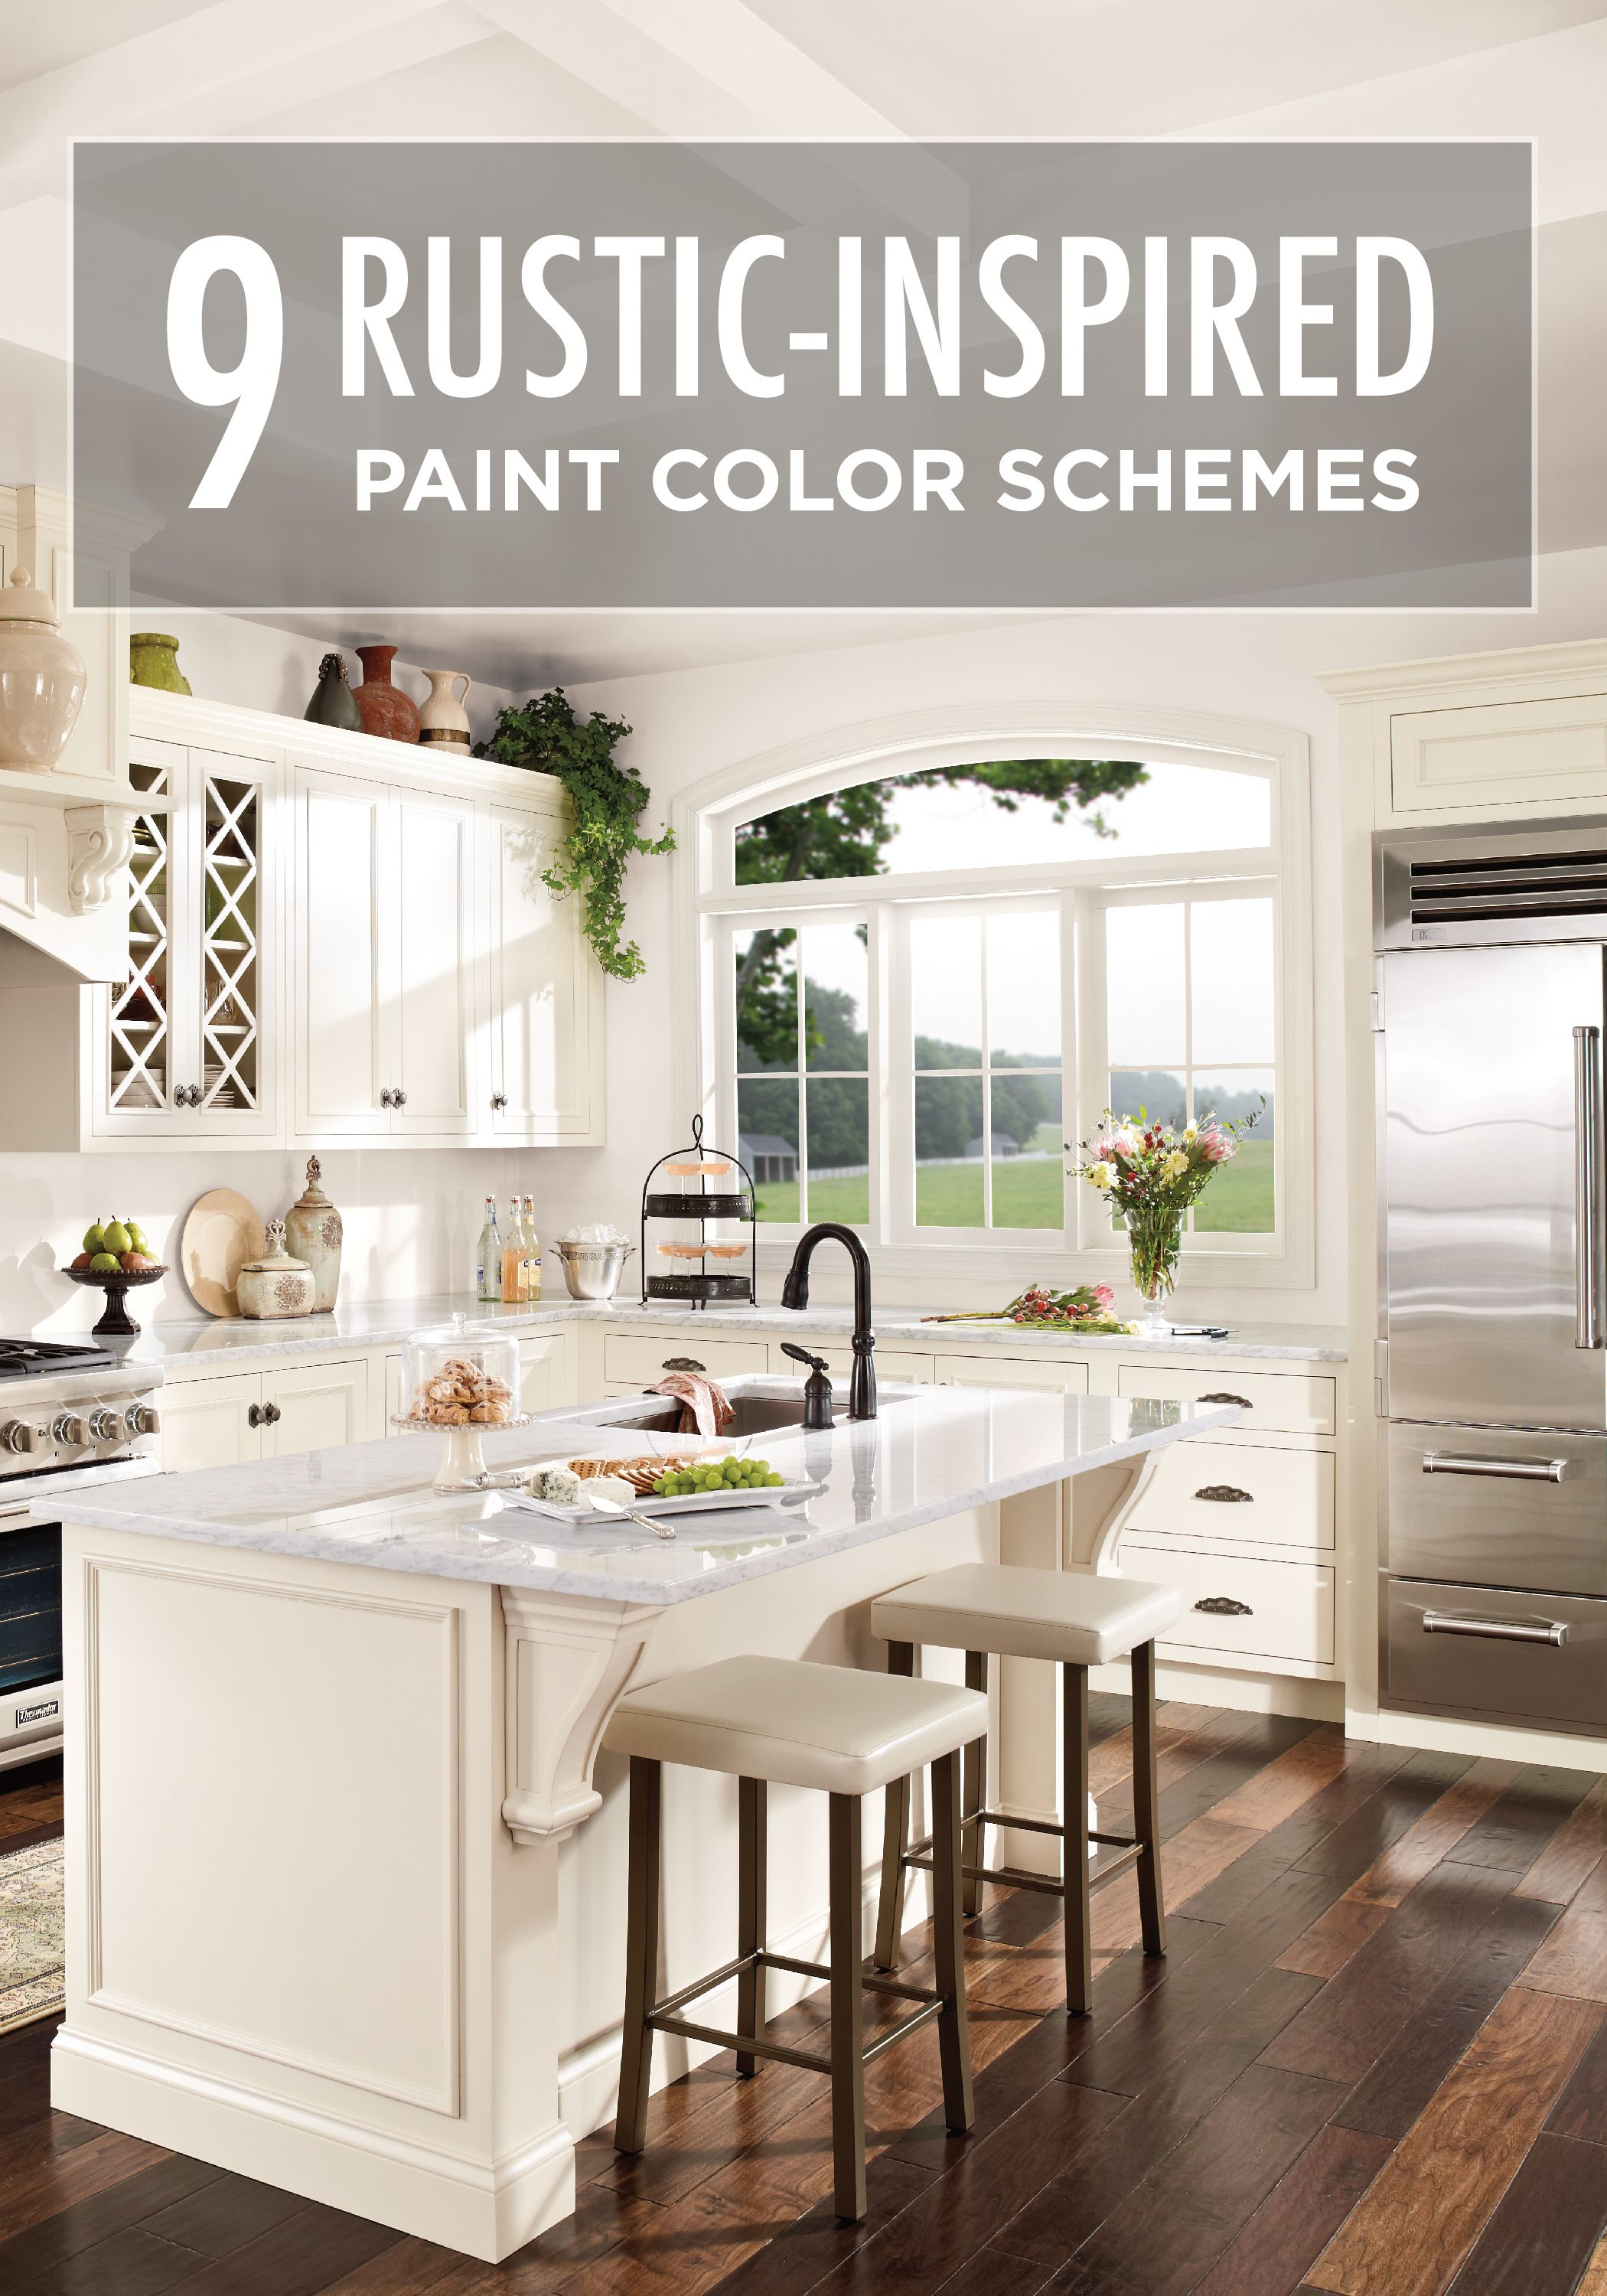 These 9 Rustic Inspired Paint Color Schemes Are Sure To Give You The Inspiration Need Refresh Any Room Of Your Home Behr In Vintage Linen For